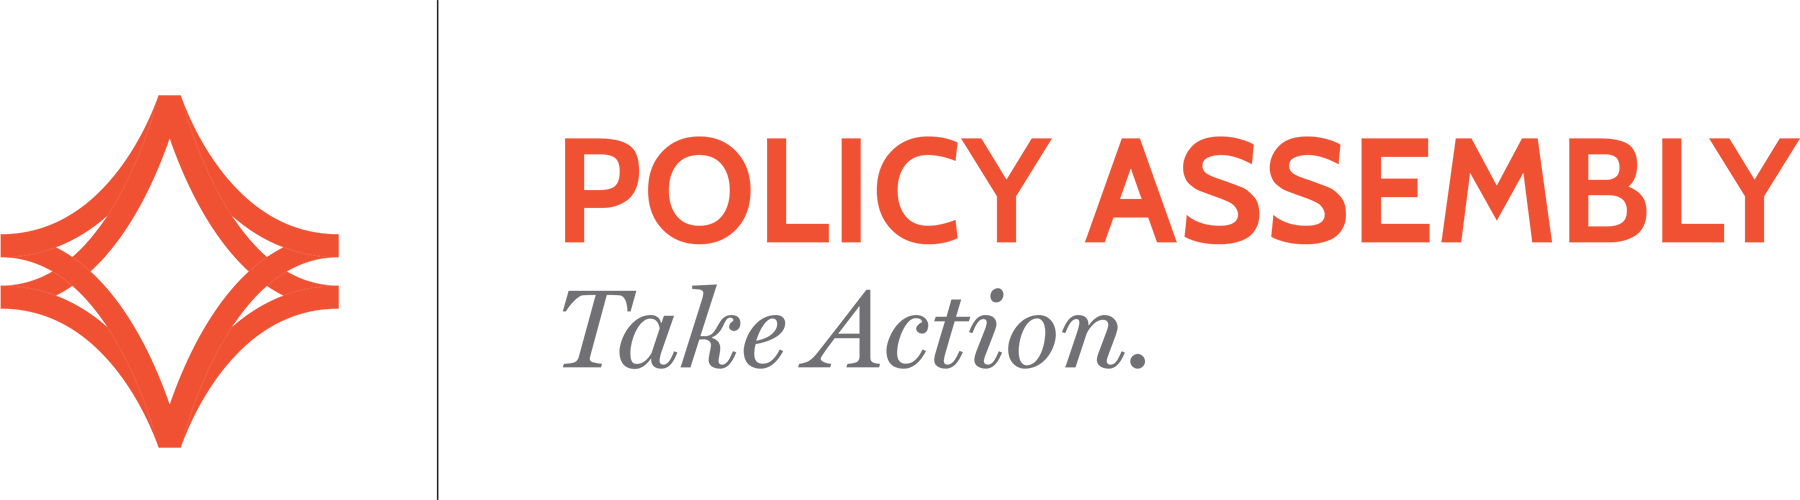 https://policyassembly.org/wp-content/uploads/2021/08/PA-text-treatment-2021.png